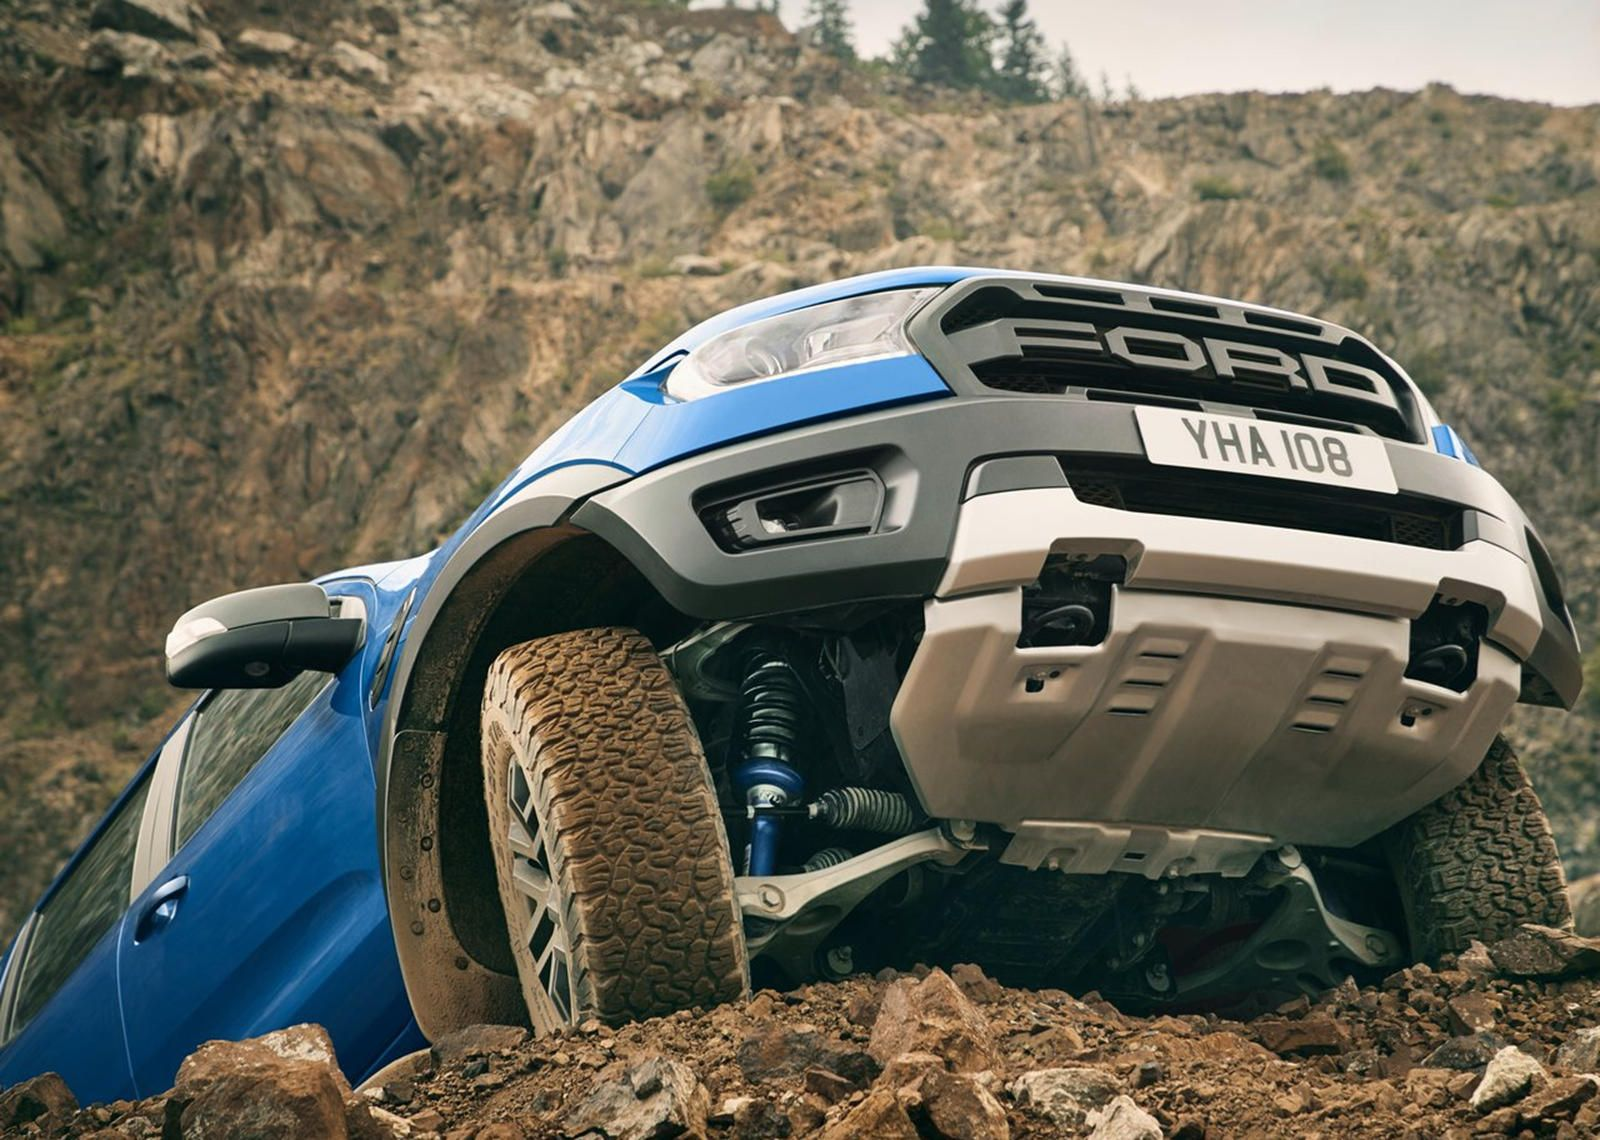 Ford Ranger Raptor Coming To America With 2 7 Liter V6 We Finally Have Some Proof In 2020 Ford Ranger Raptor Ford Ranger 2019 Ford Ranger